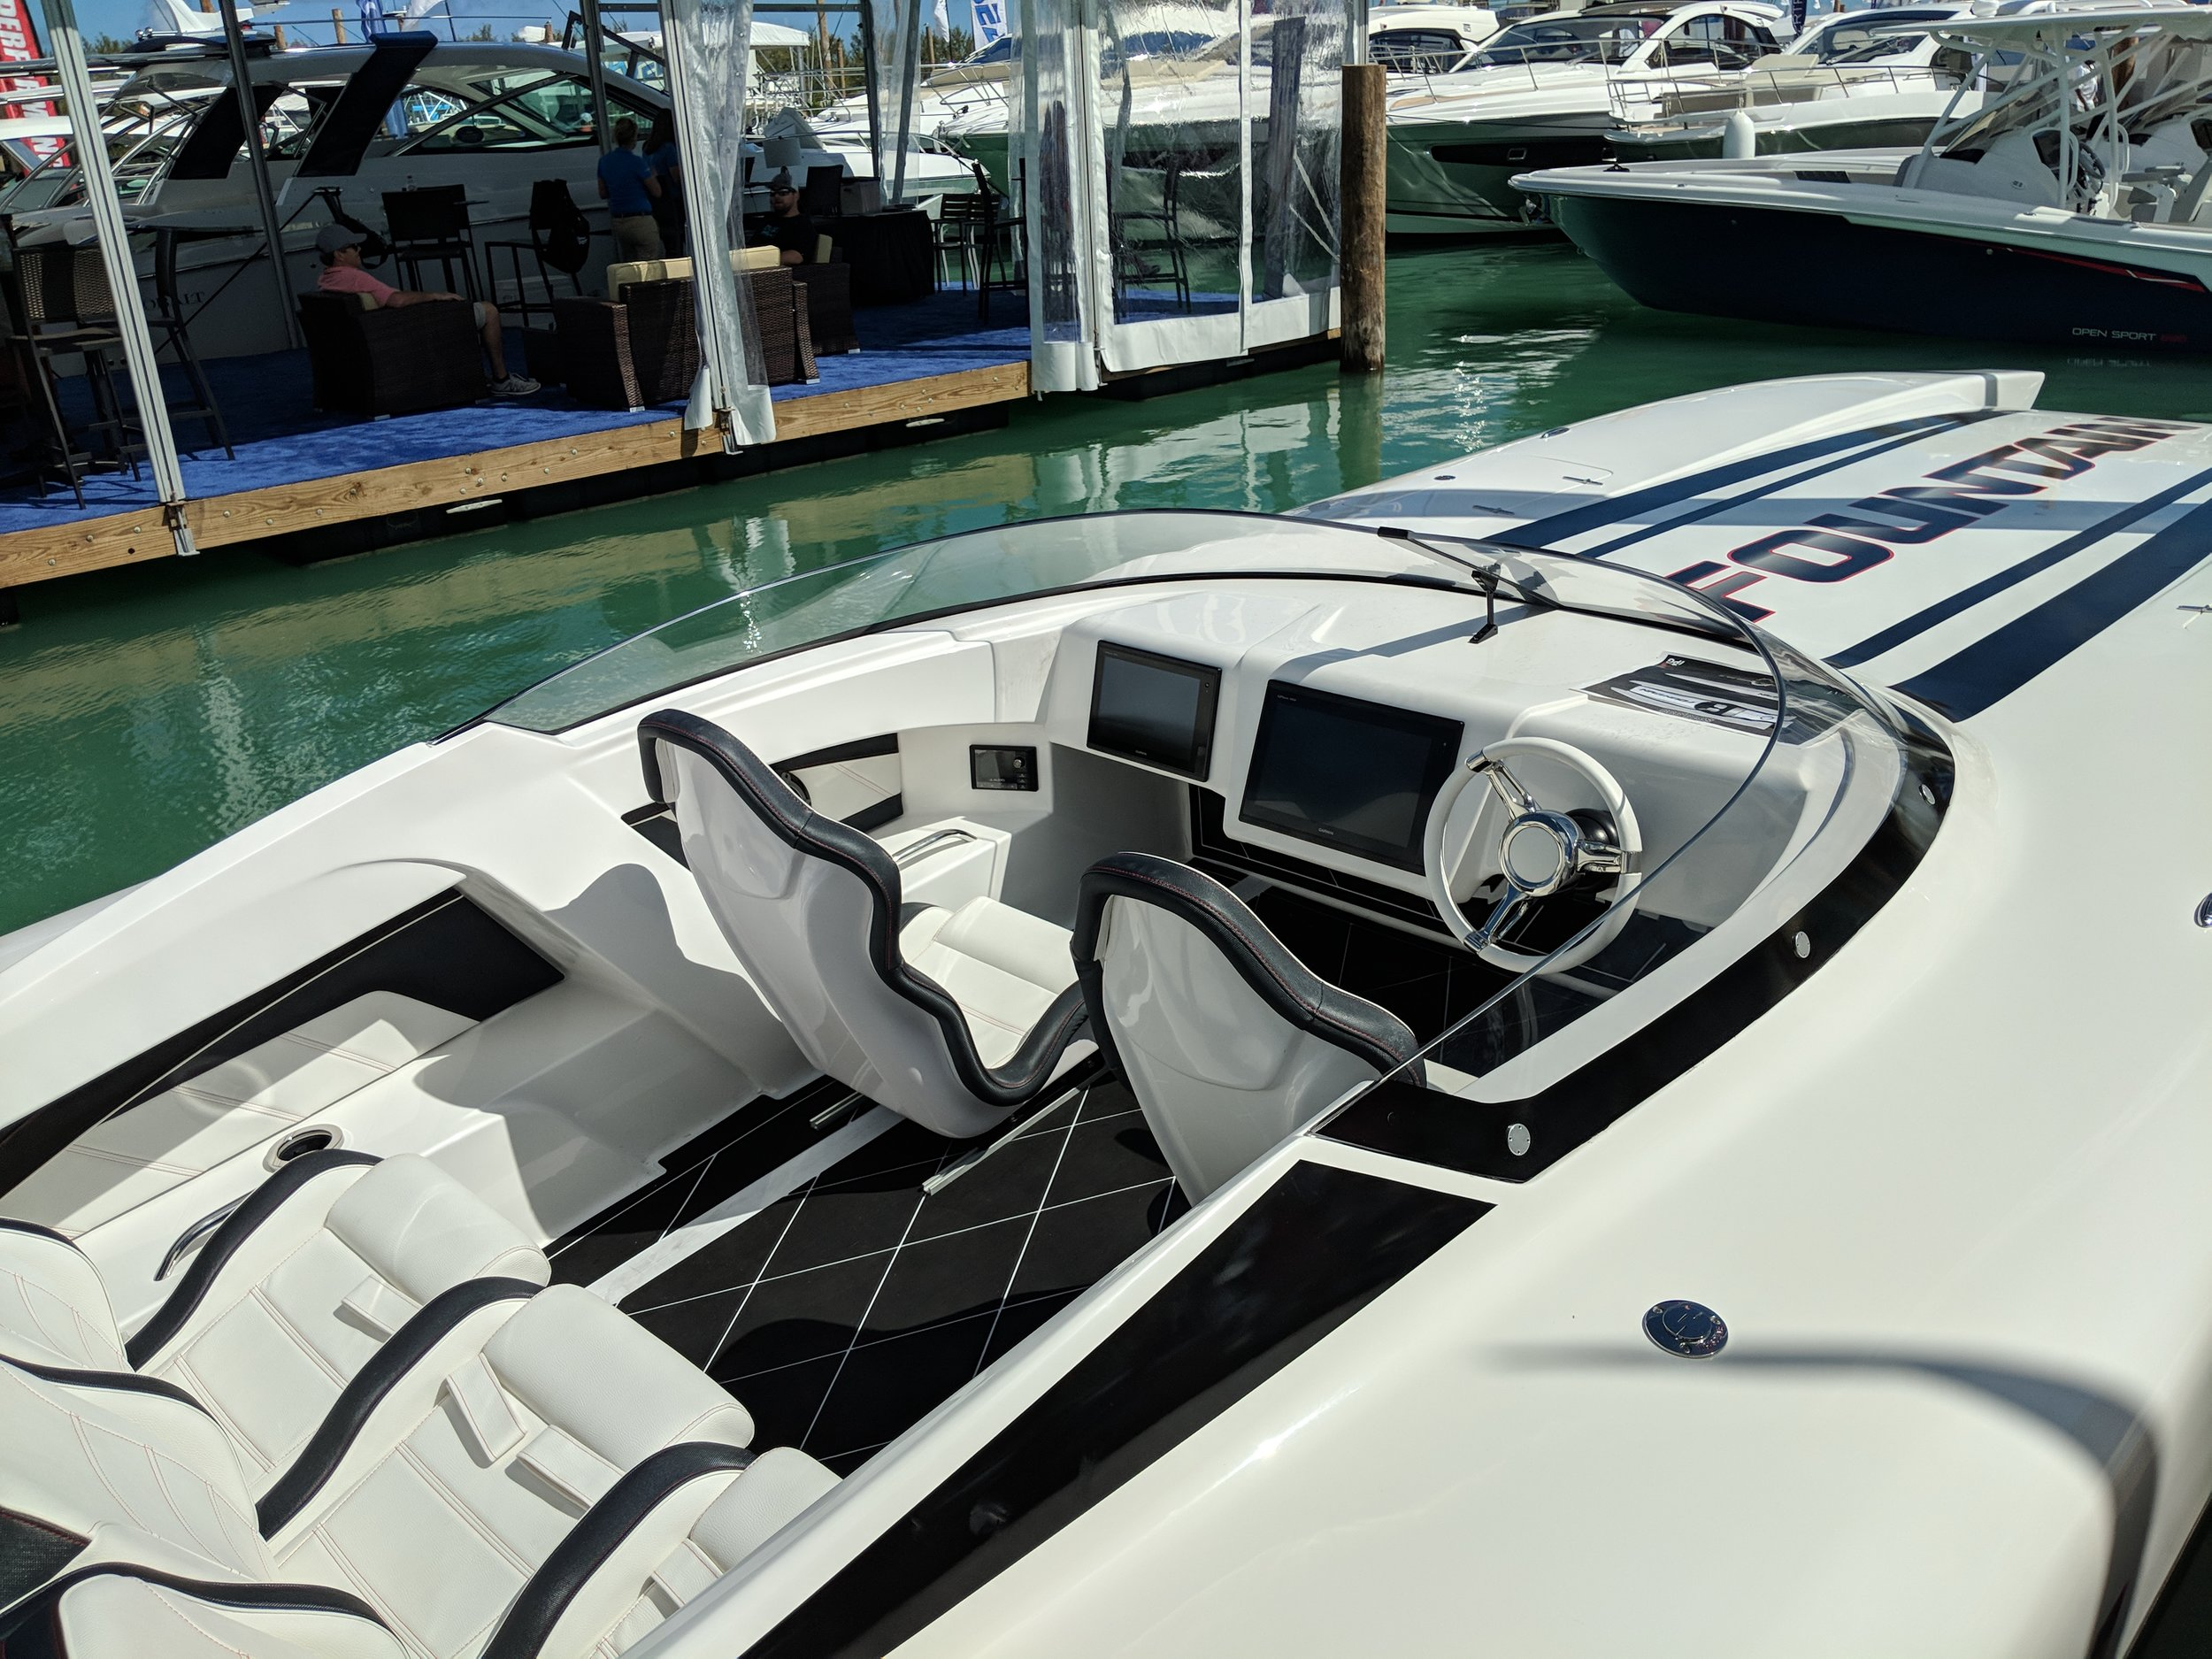 The 32' Fountain Thunder Cat will be in the roundup, and it's a very unique offering for the recently revitalized brand, known for their record setting offshore V hulls.